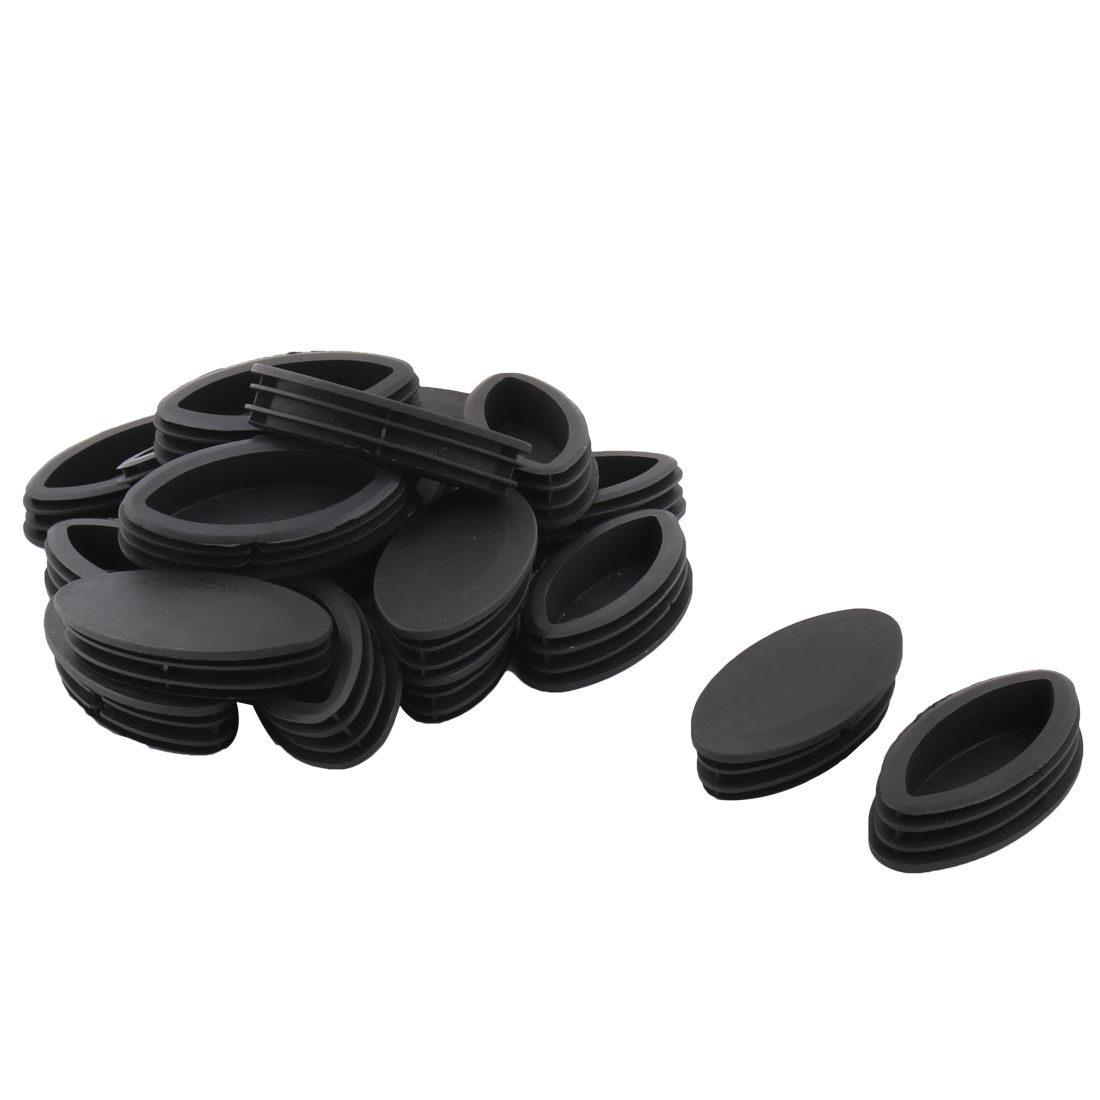 Plastic Oval Design Tube Insert End Blanking Cover Cap Black 100 x 50mm 20pcs